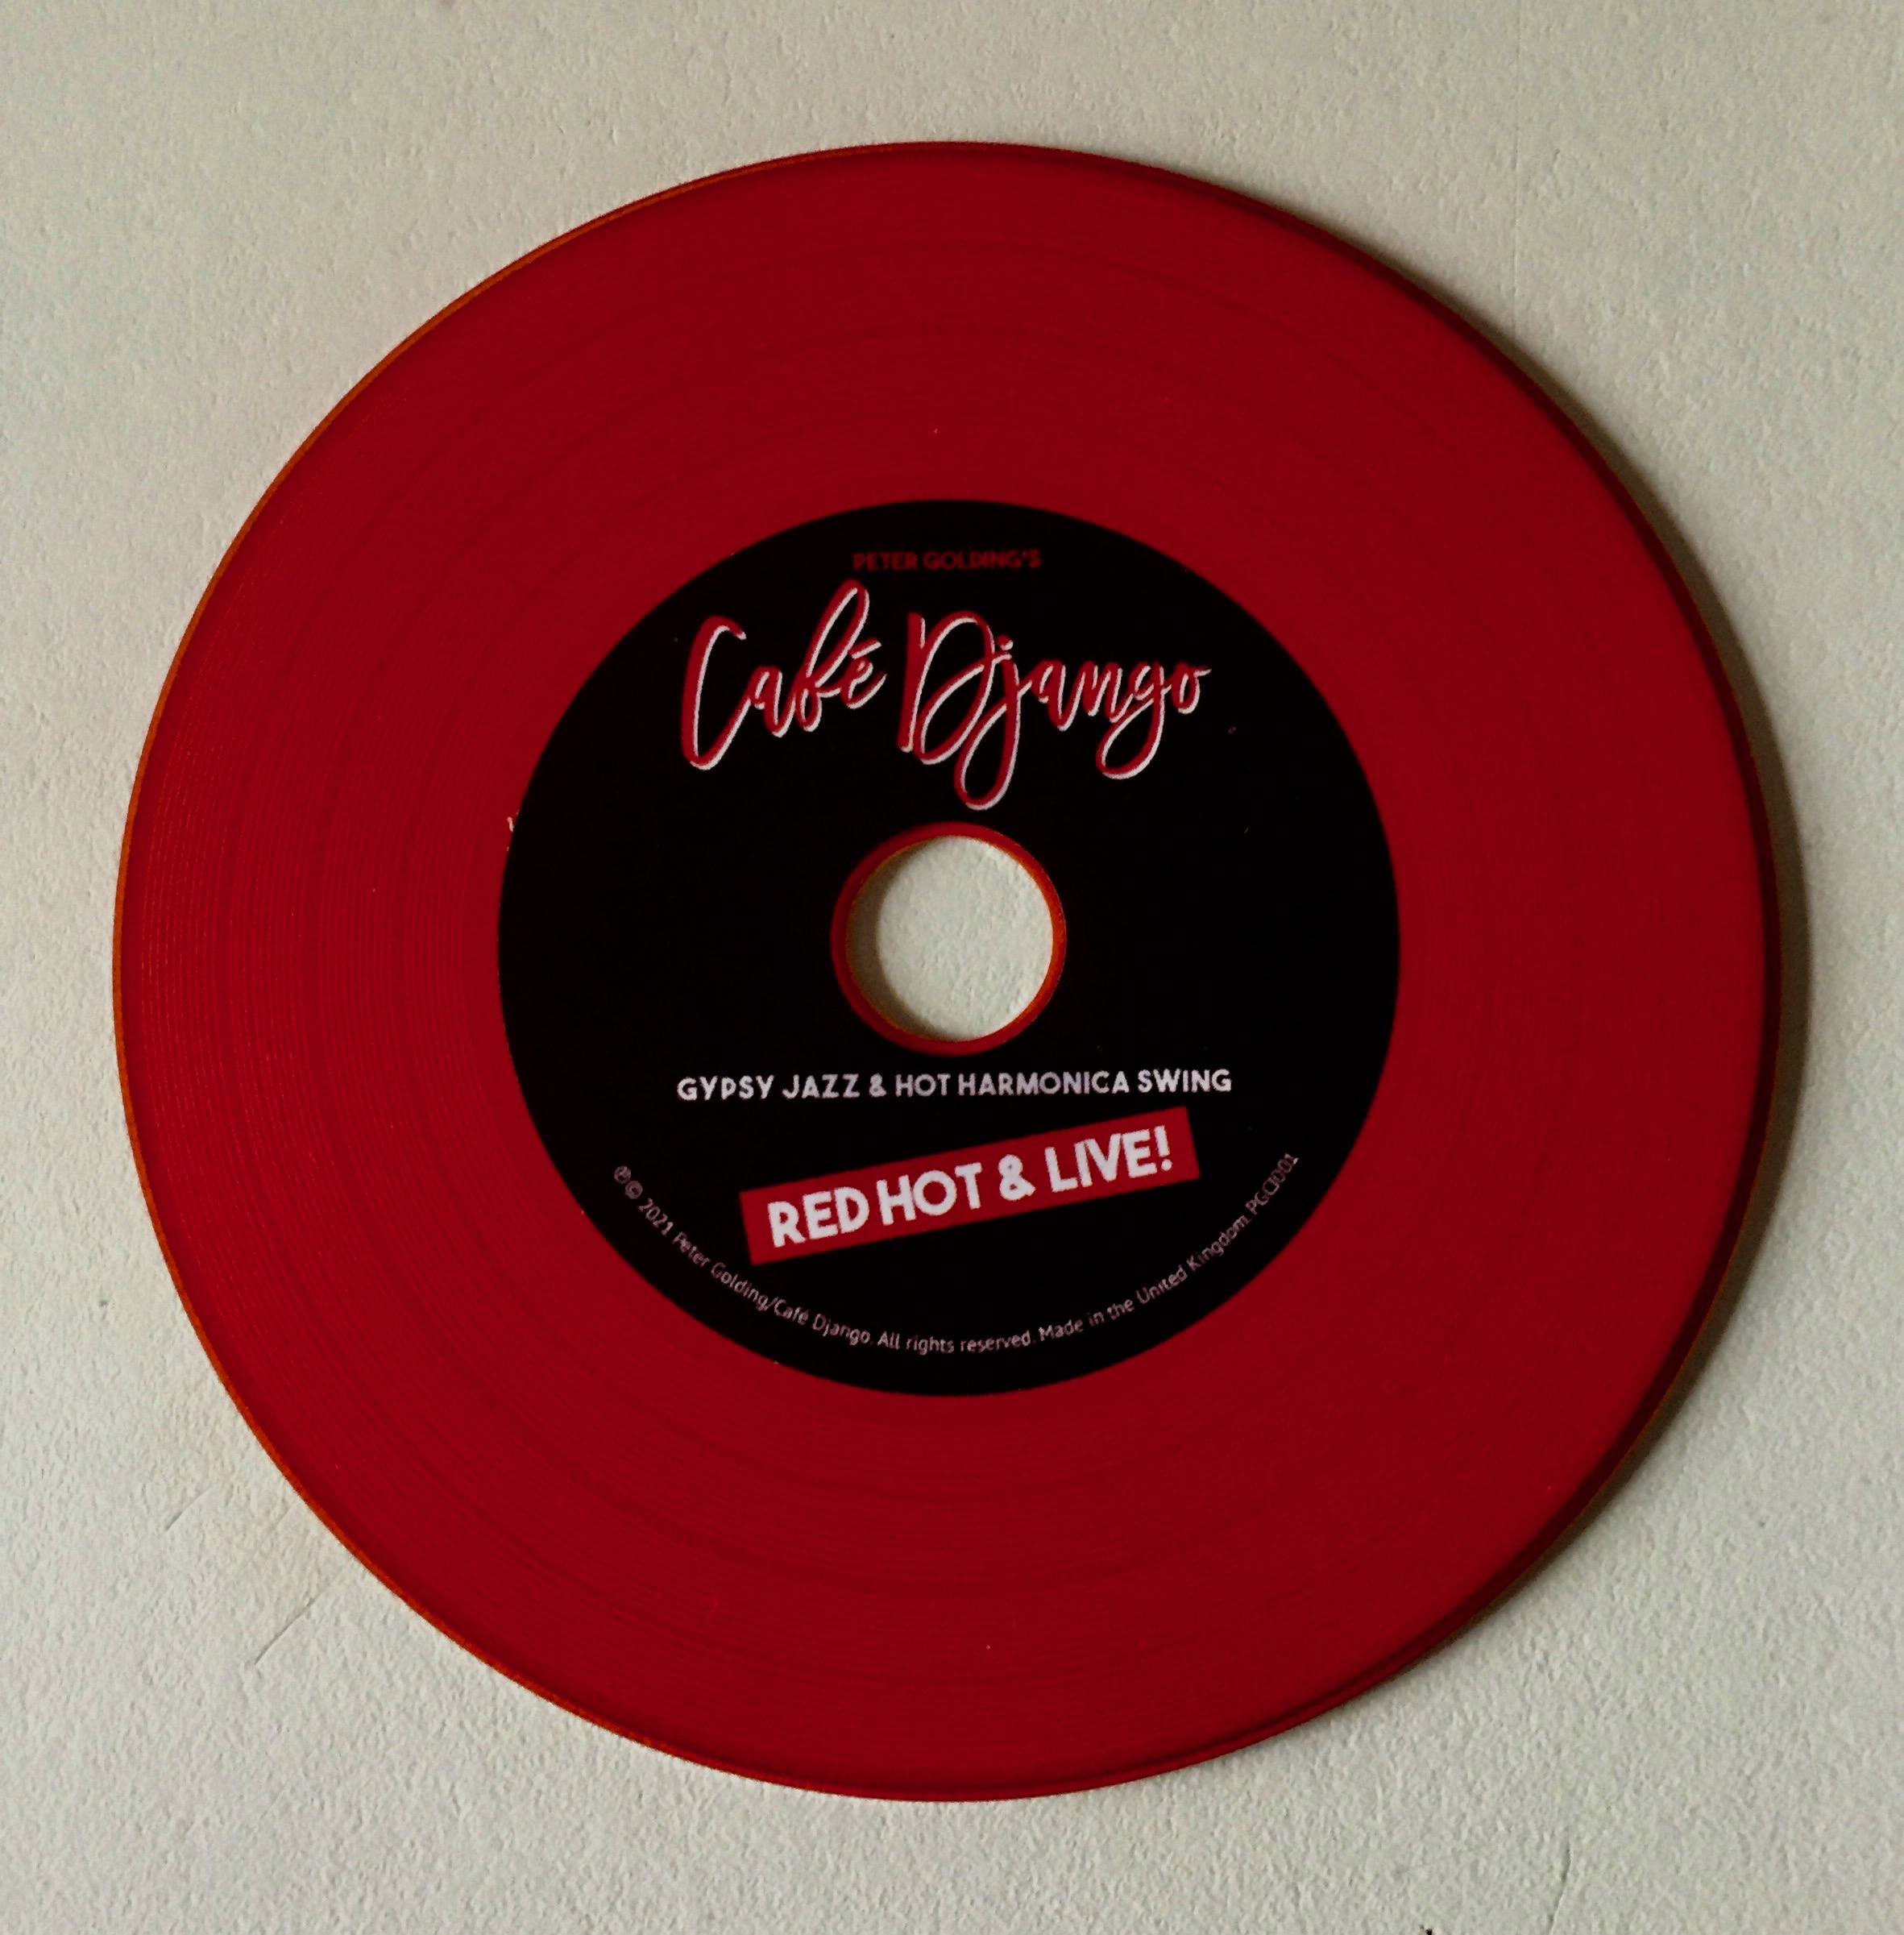 red hot & live CD